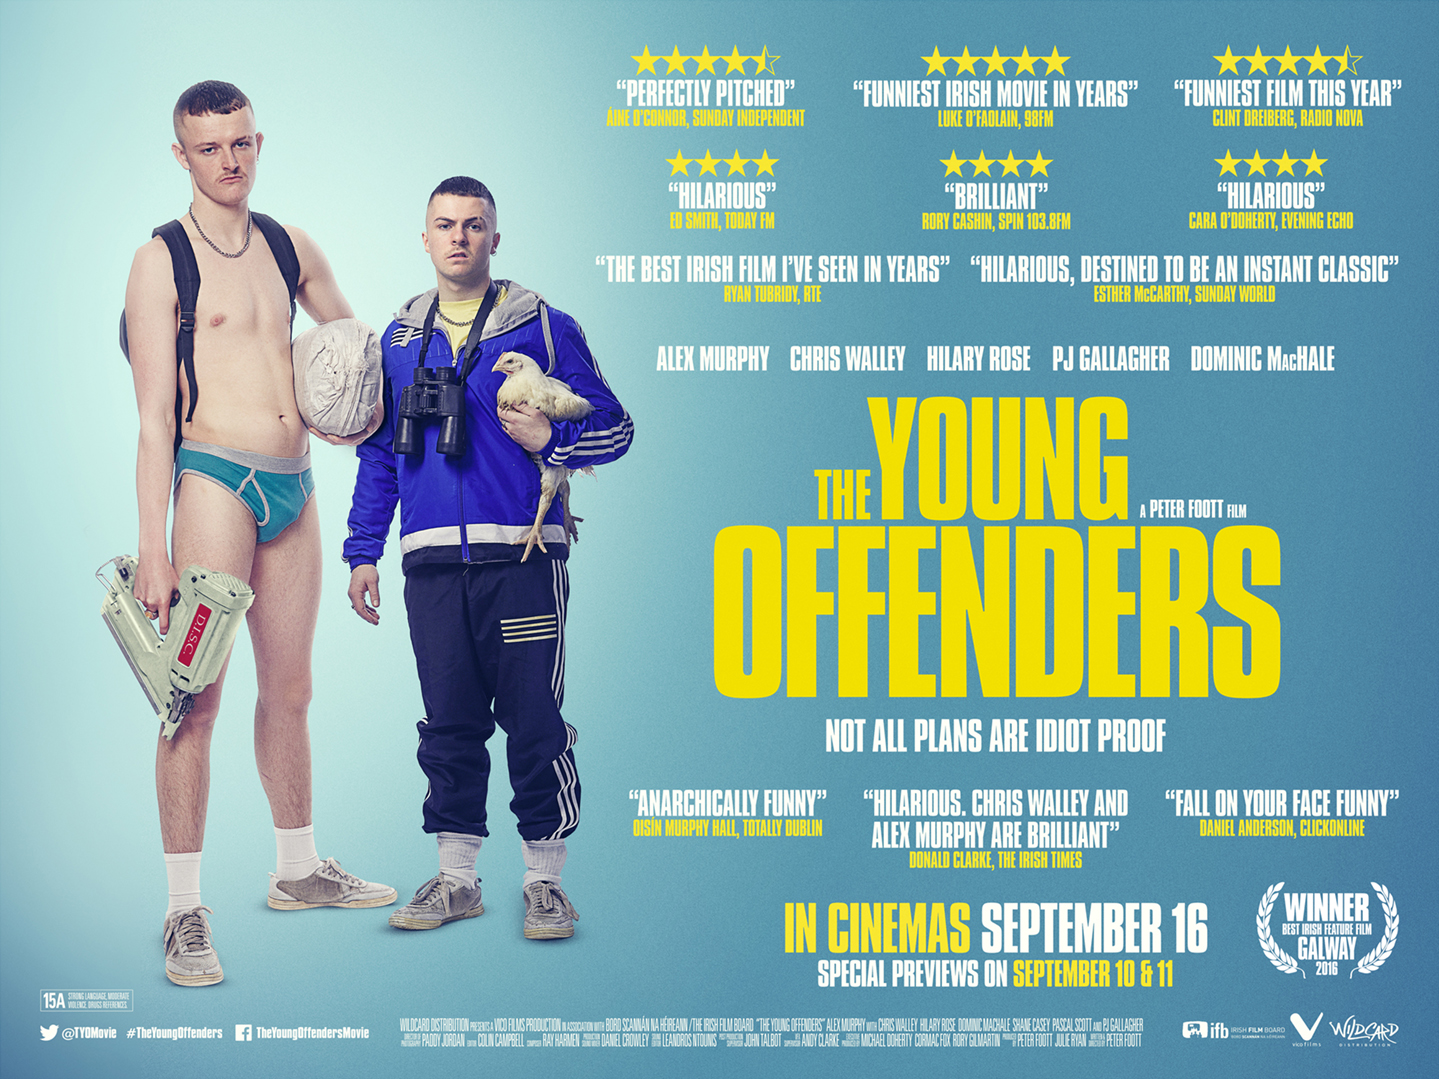 The Young Offenders - WINNER BEST IRISH FEATURE FILM GALWAY 2016